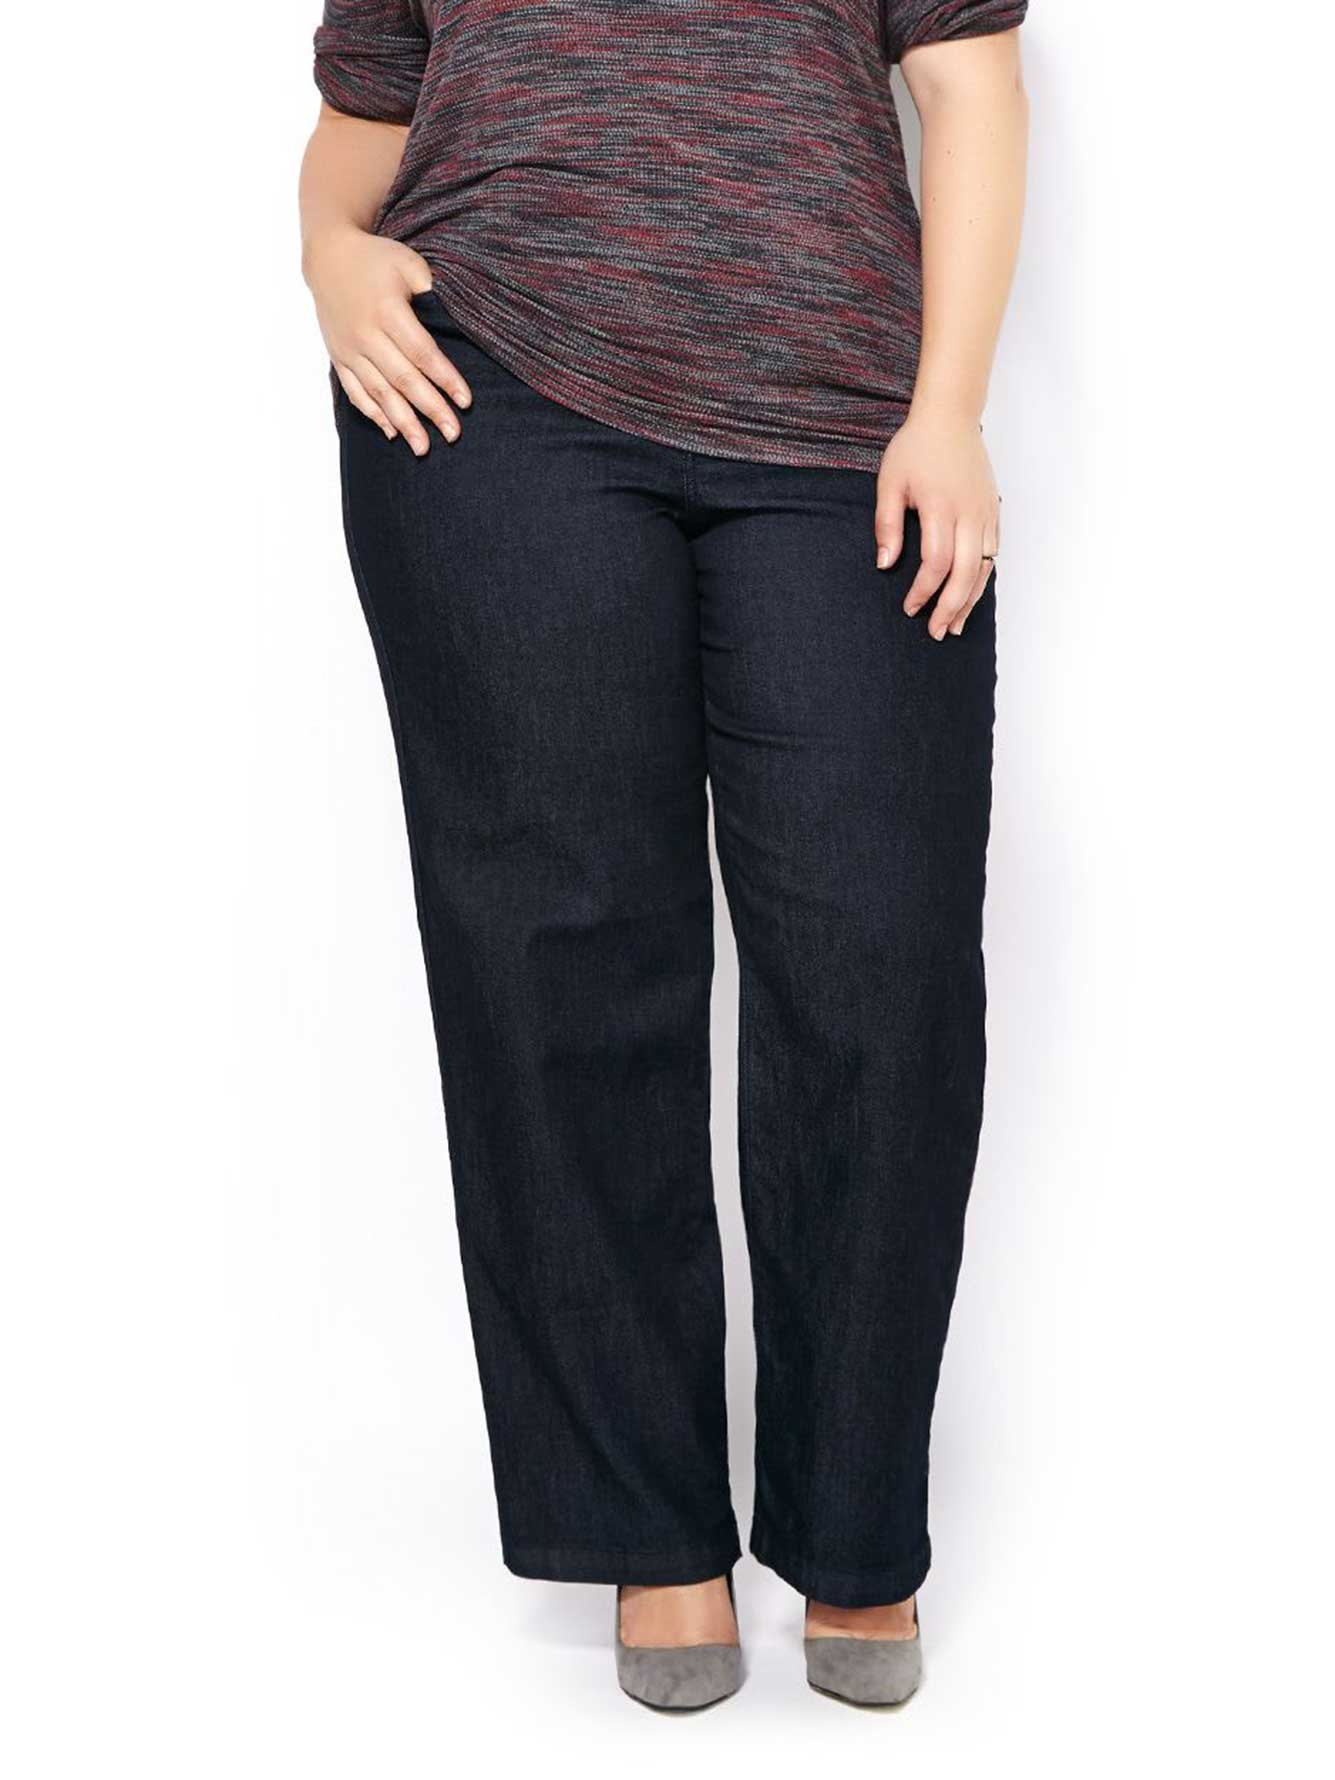 Petite Curvy Double Frayed Soft Slim Pocket Skinny Jeans in Black.